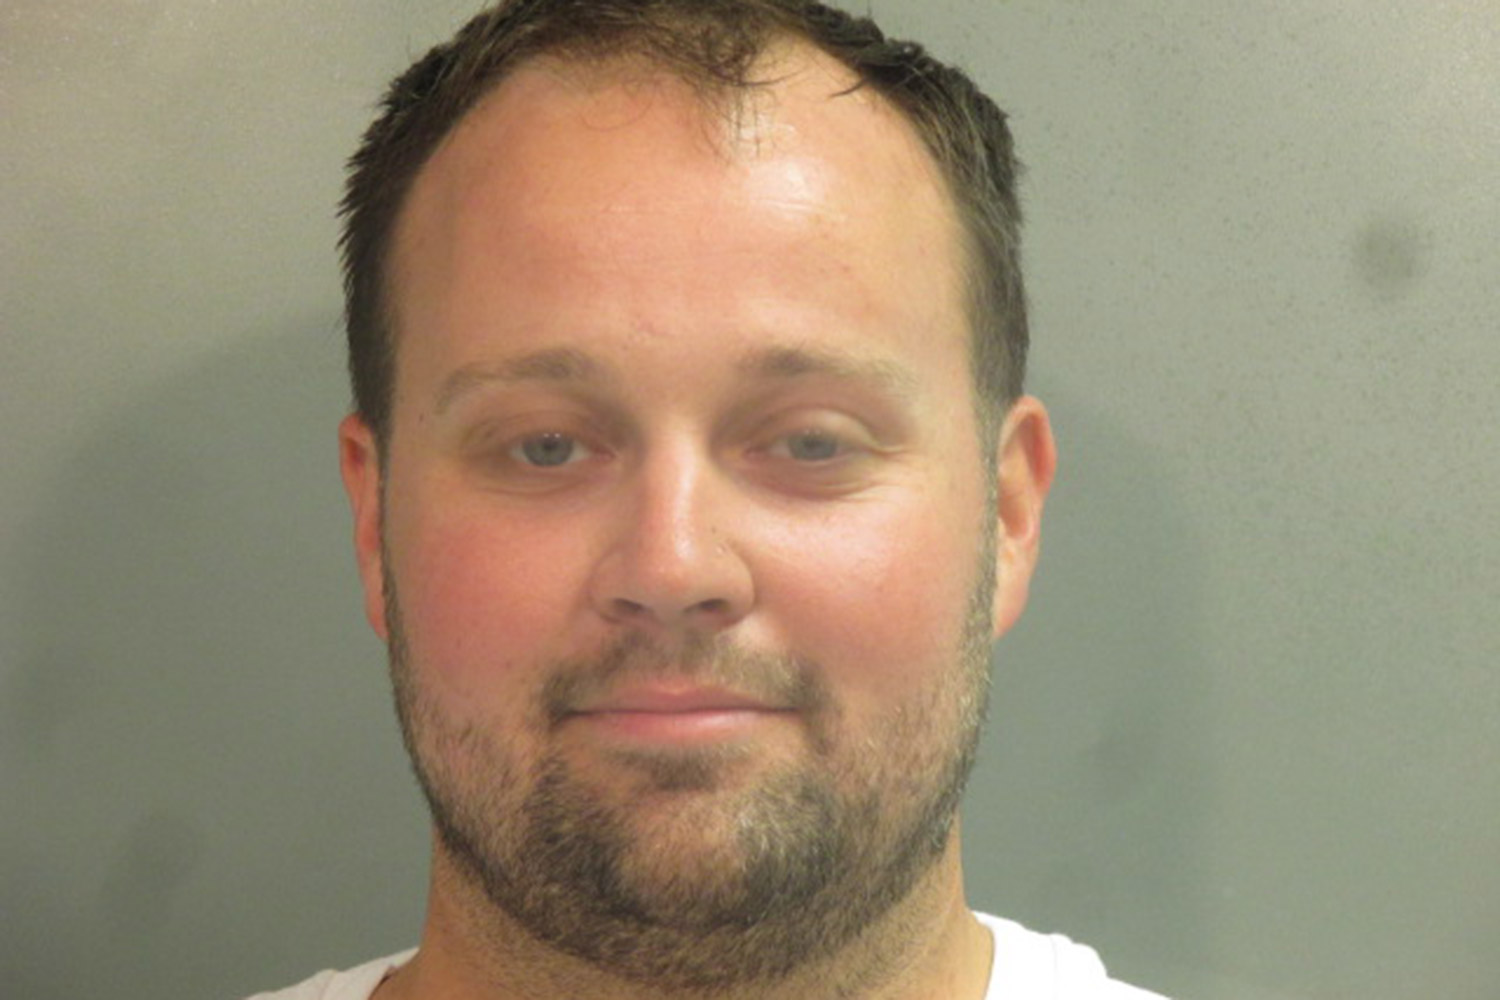 Josh Duggar Arrested, Being Held in Jail in Arkansas on Federal Charges